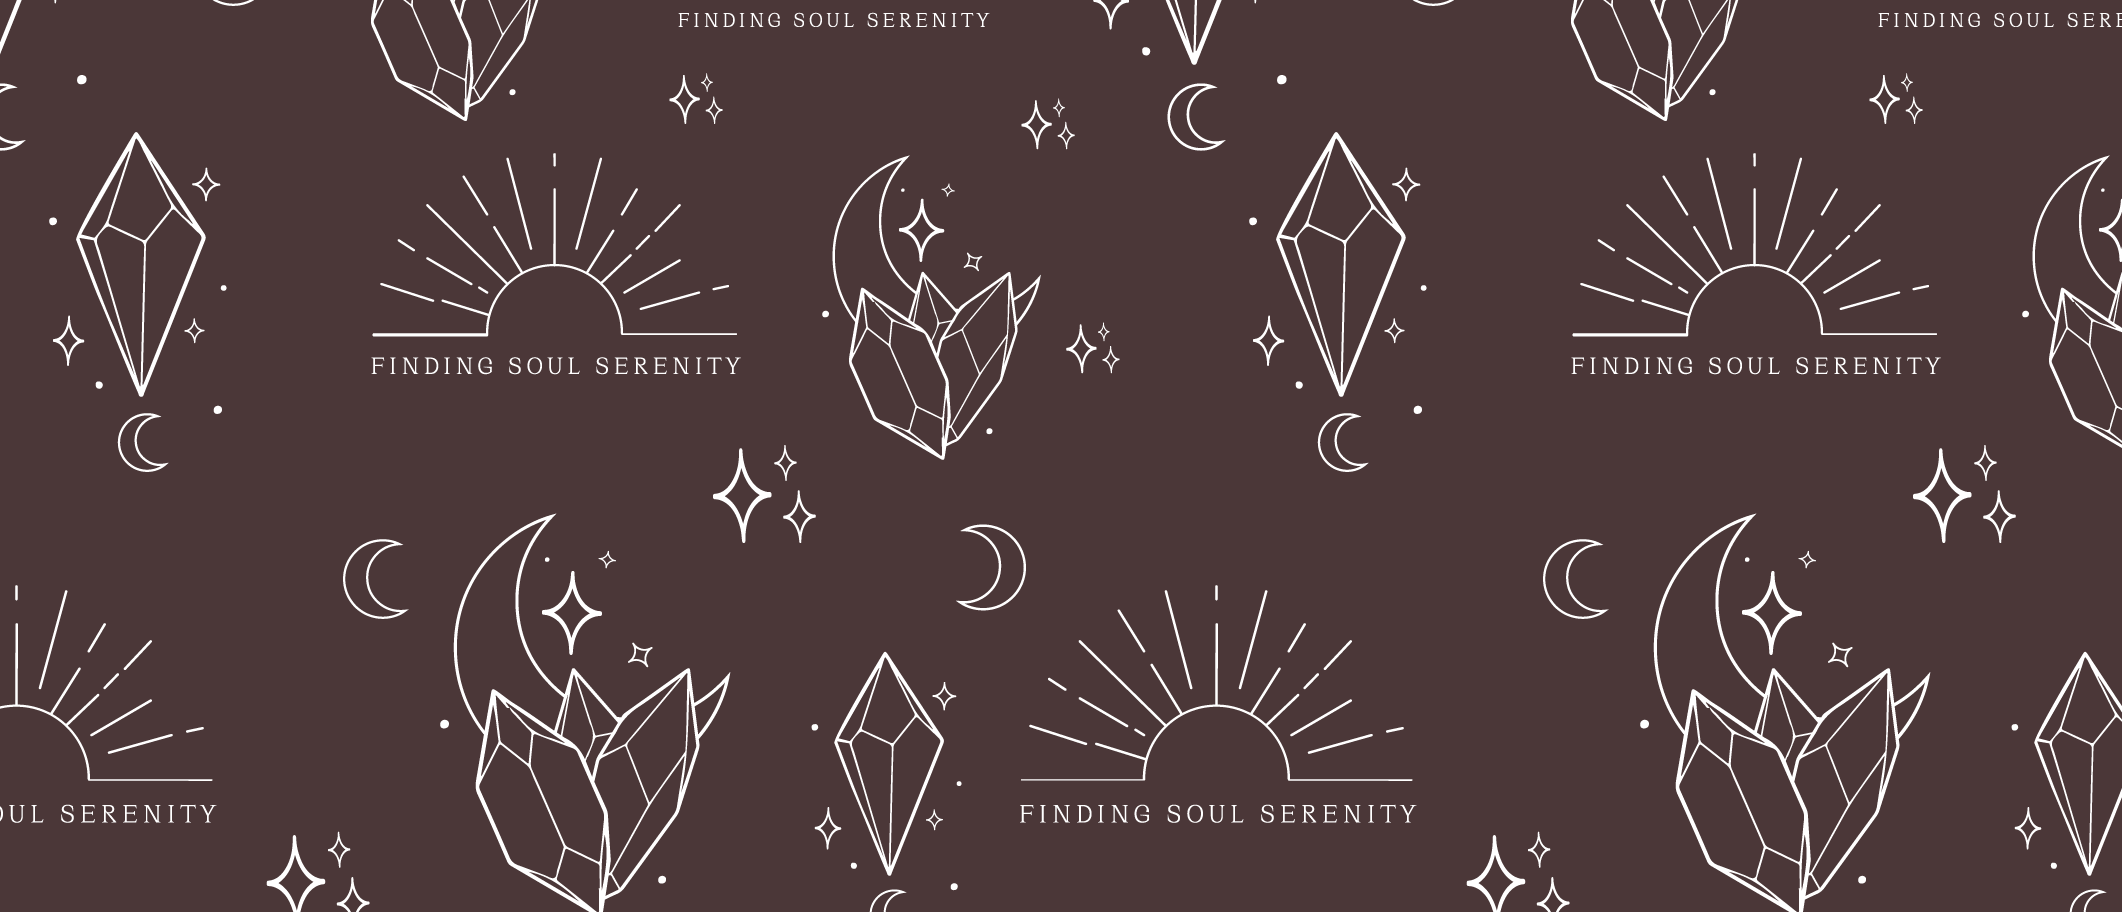 finding soul serenity brand pattern